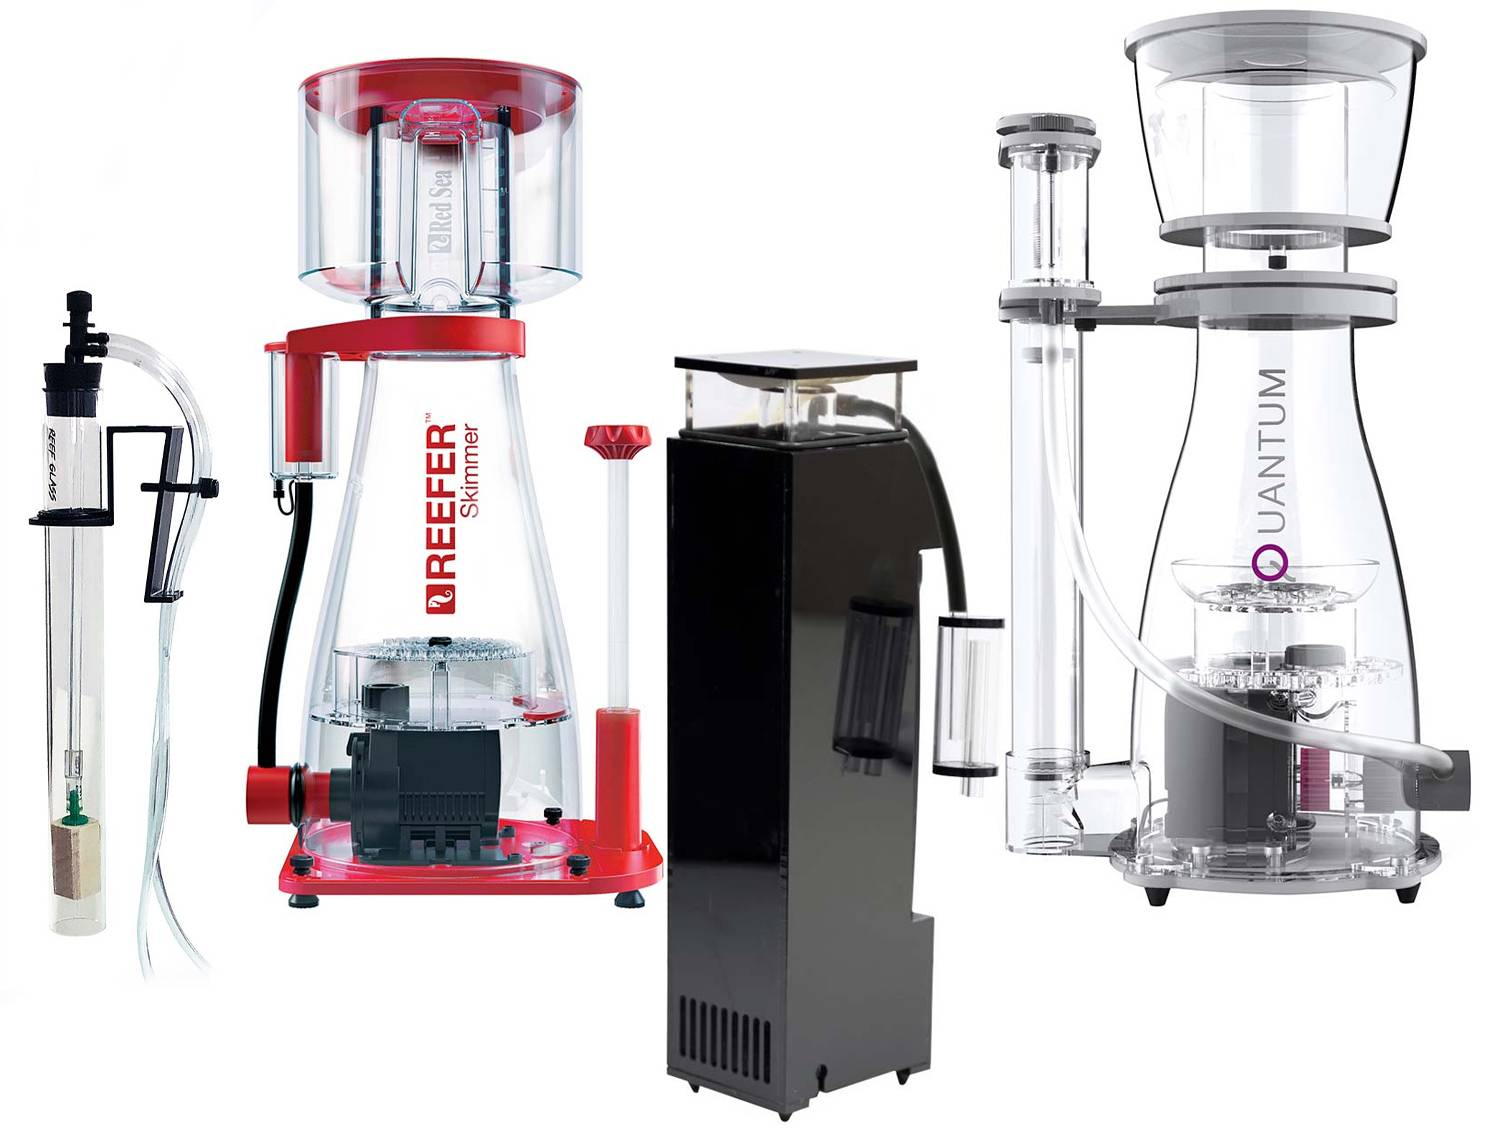 Different models and styles of In-Sump types of Protein Skimmers